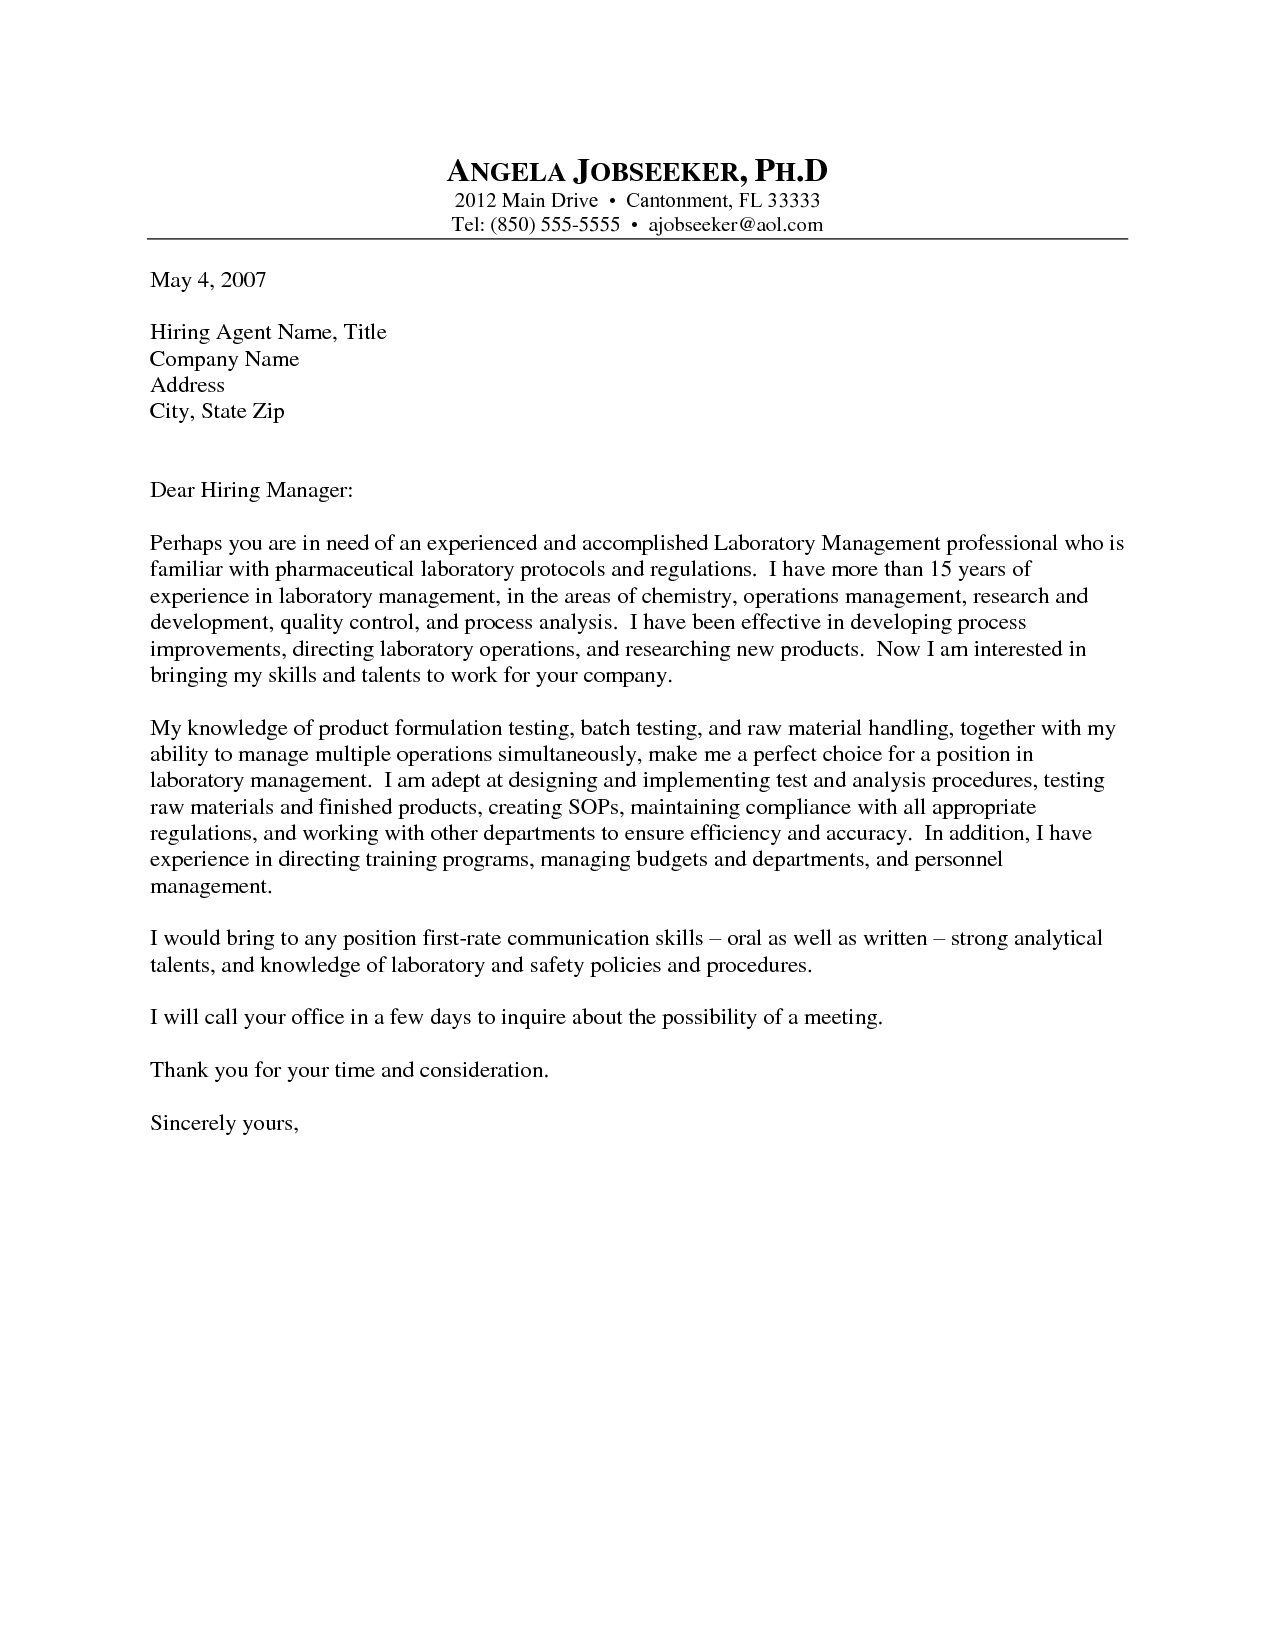 cover letter template lpn resume format for teacher example examples professional Resume Lpn Resume Cover Letter Examples